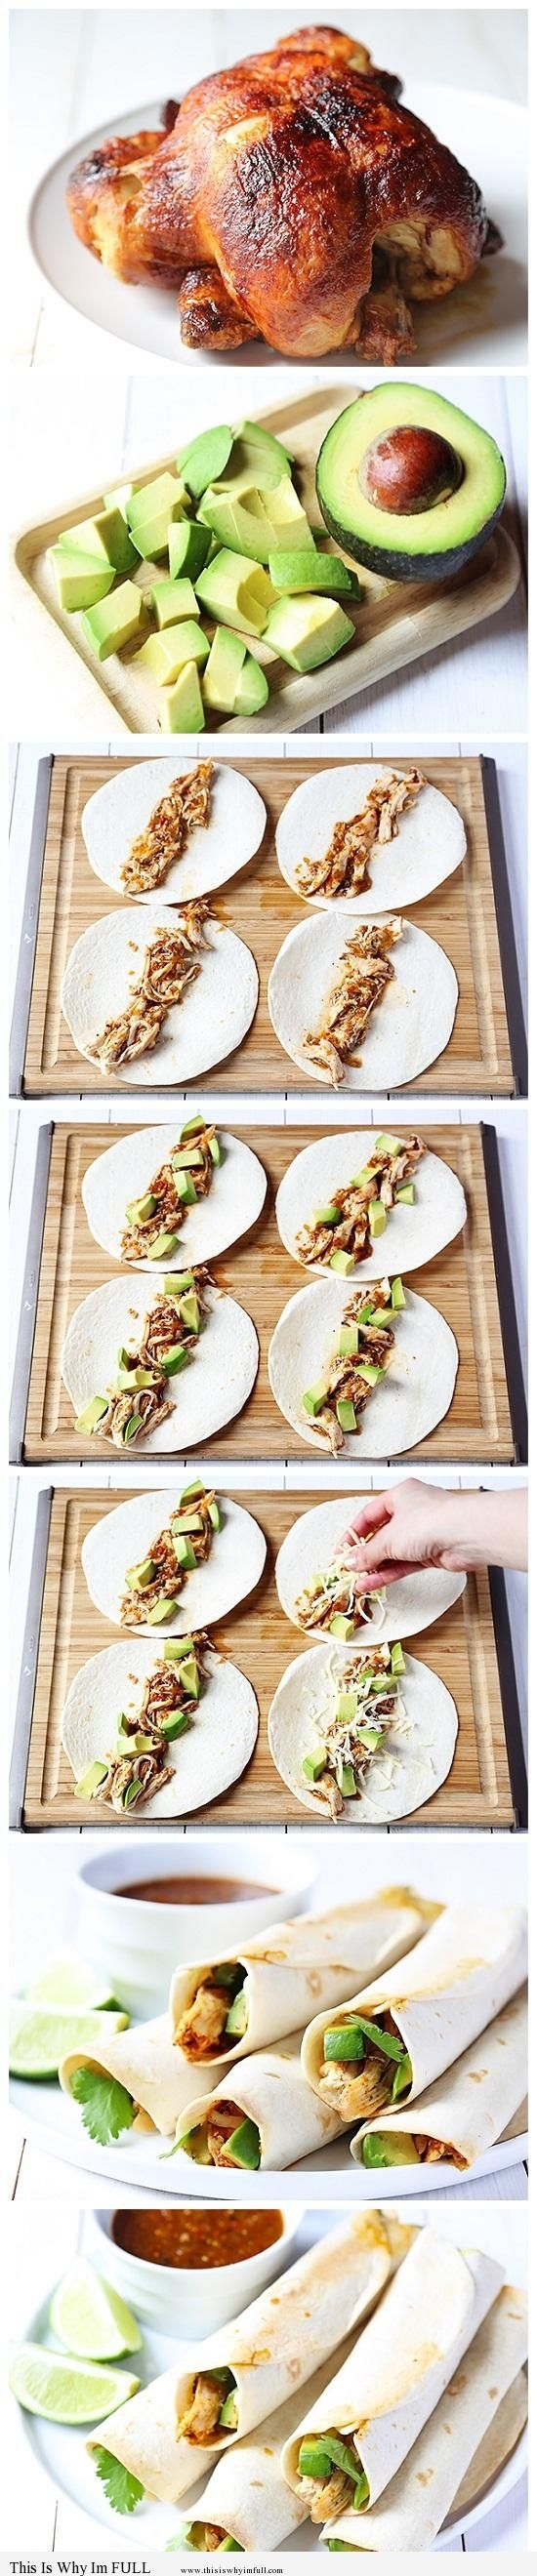 Chicken and Avocado Taquitos - http://www.thisiswhyimfull.com/dinner/chicken-and-avocado-taquitos